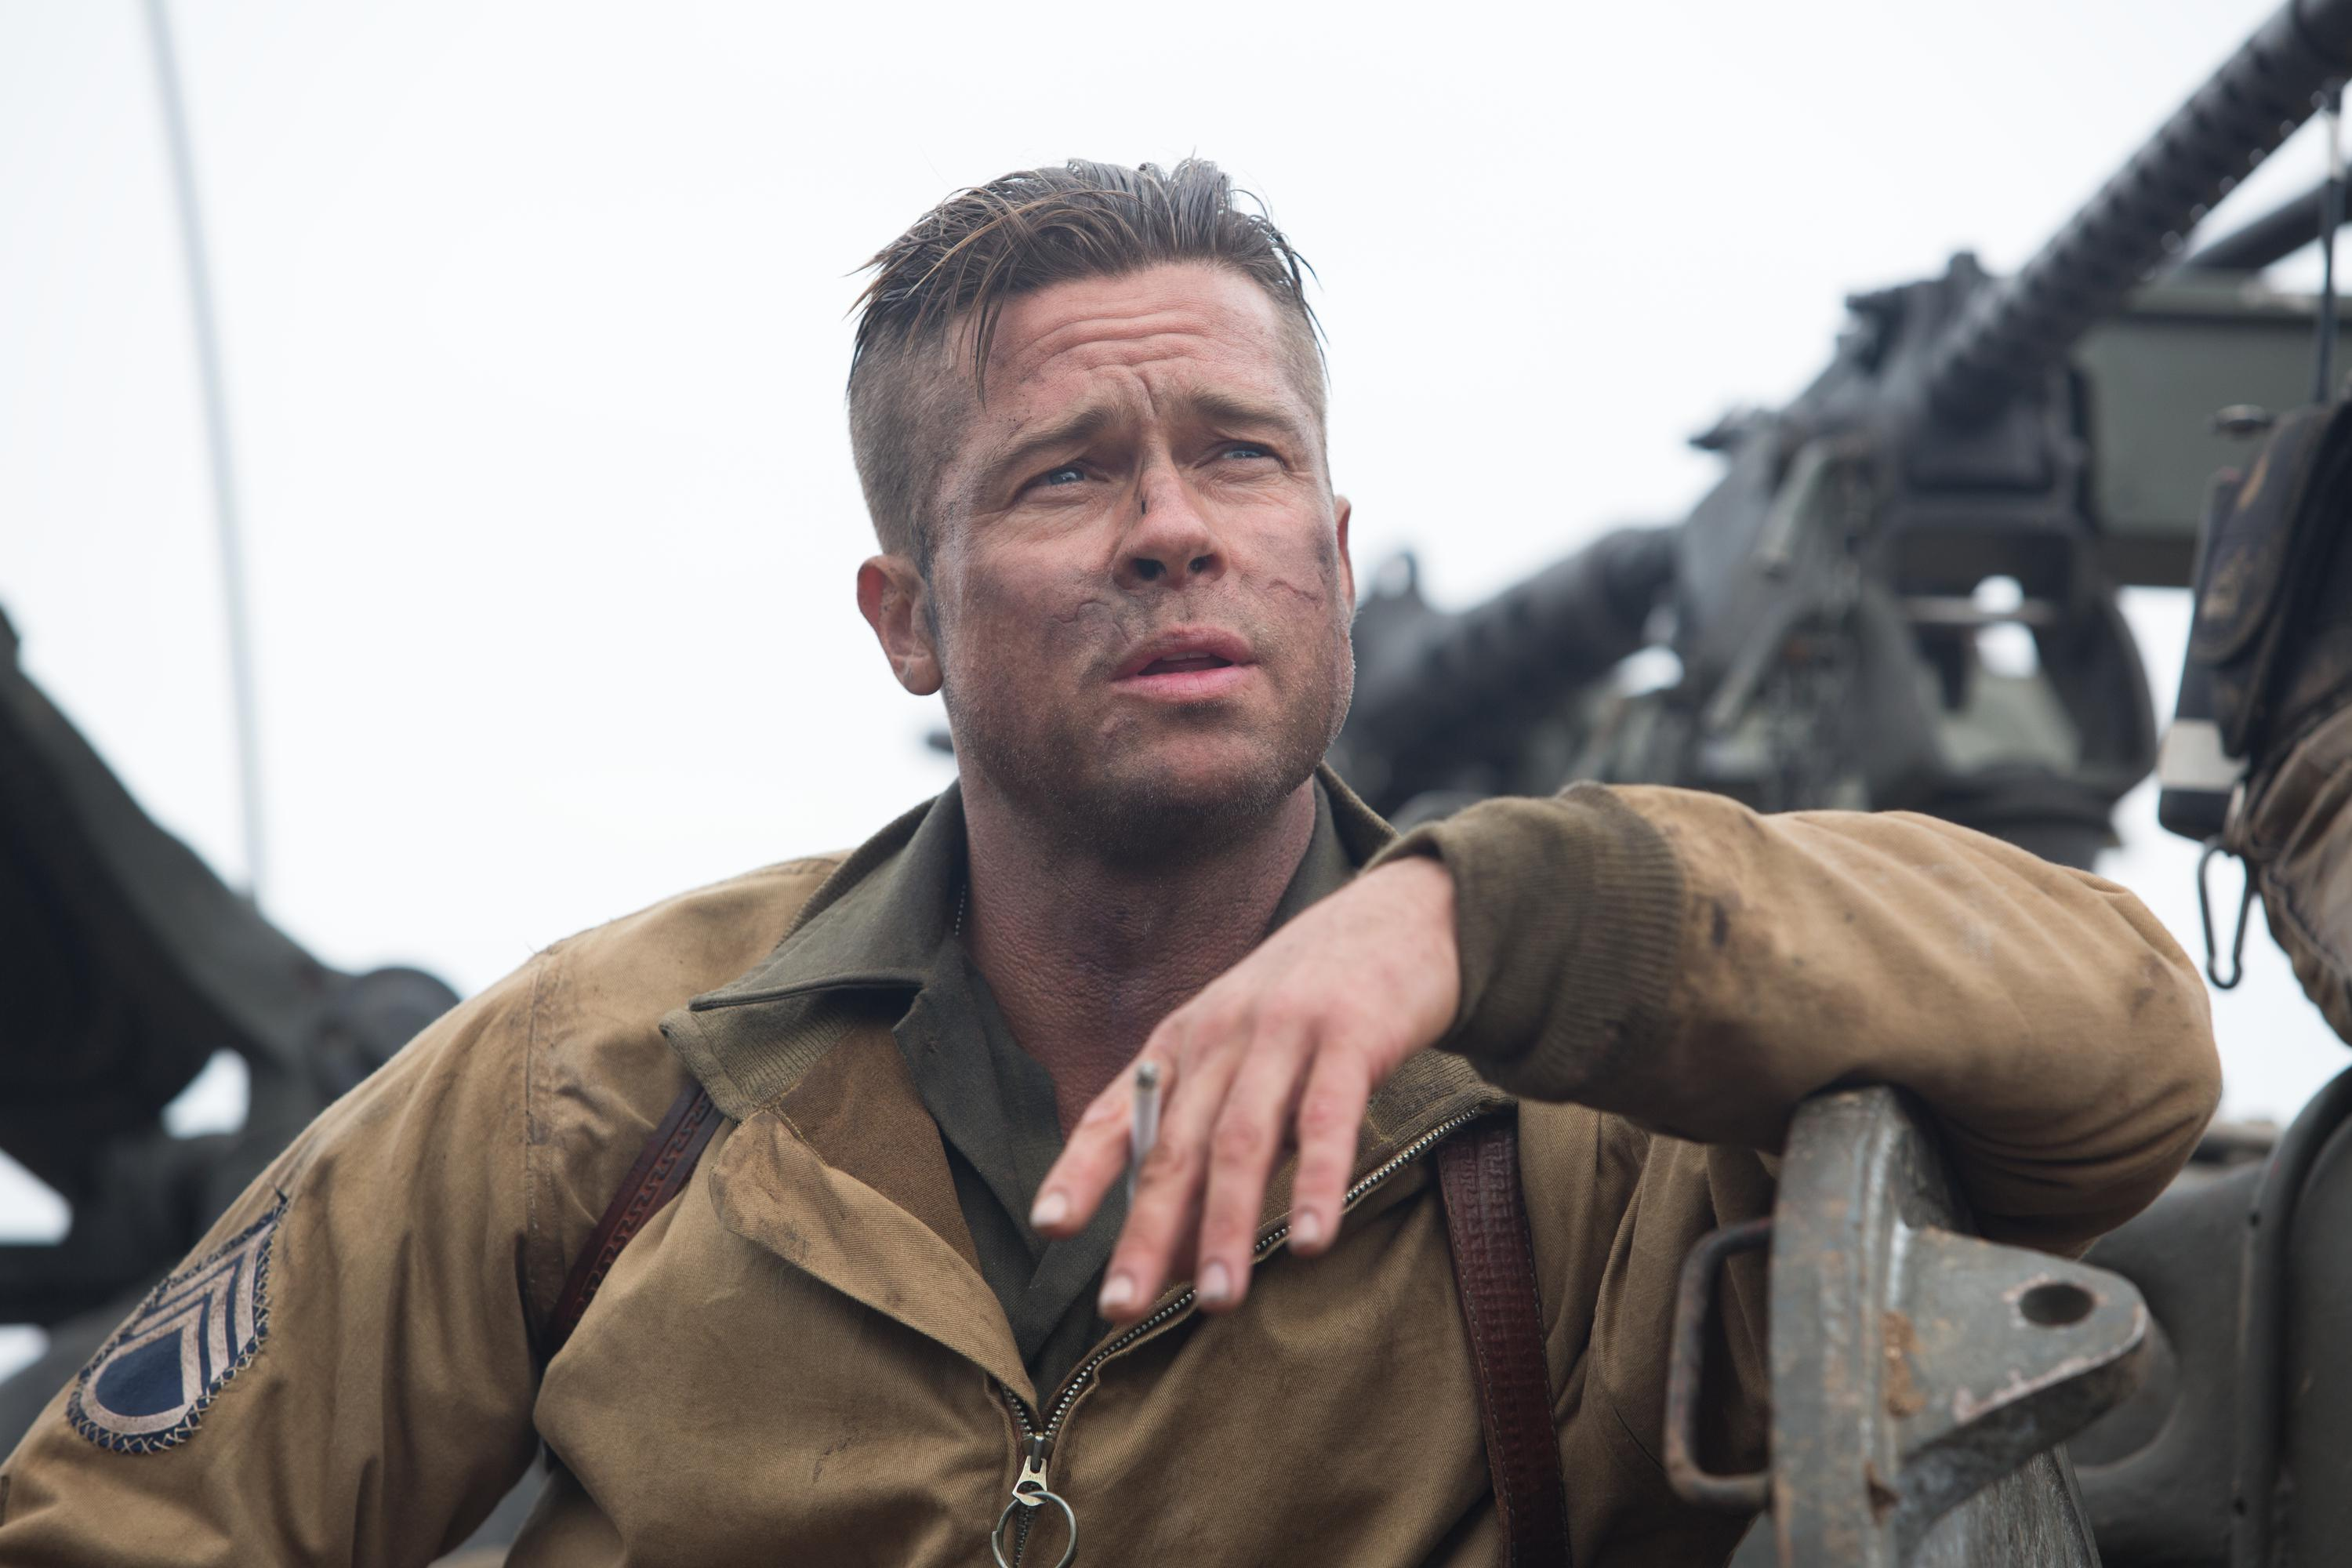 brad pitt fury movie hd wallpaper download high quality WW kr